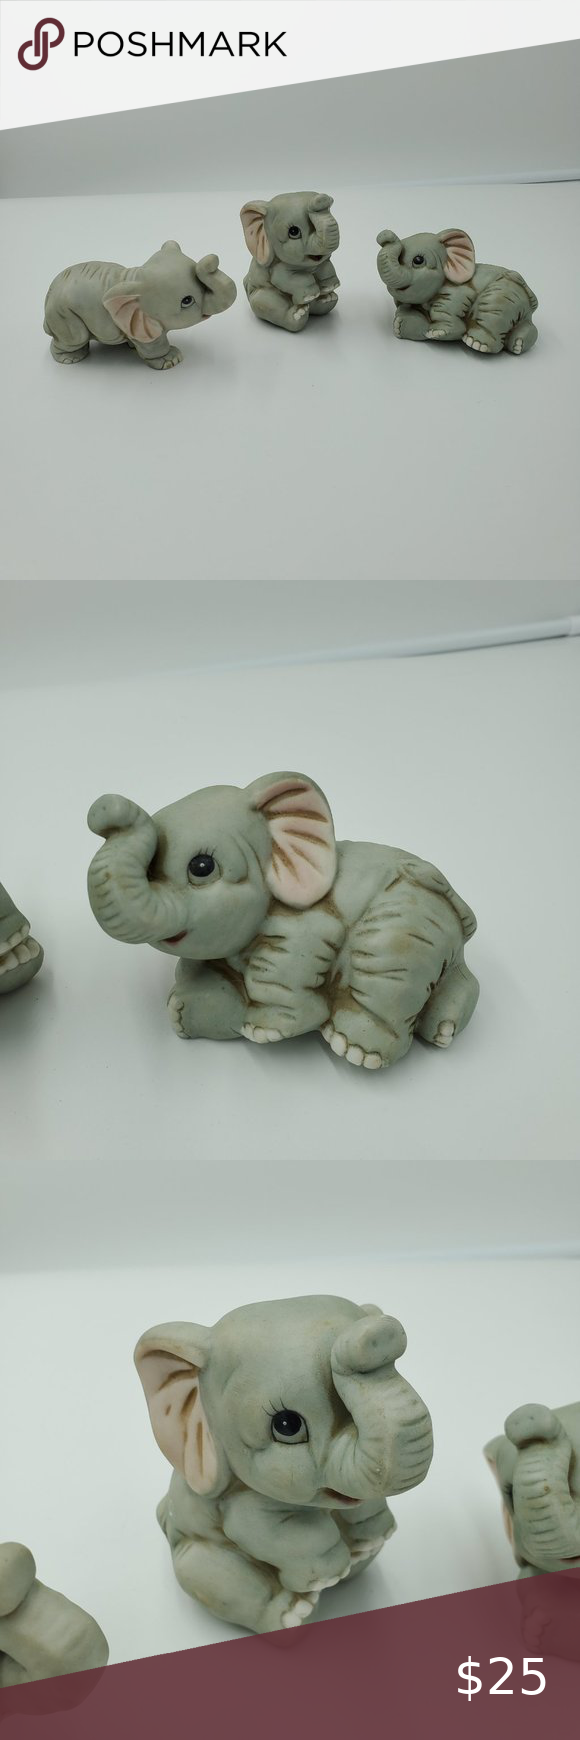 Vtg Homco 3 Ceramic Elephants Knick Knack Gray Vintage Homco  Home Decorations 3 Pieces Ceramic  Miniature Elephants Pre-Owned Excellent Condition Shipped with USPS Priority Mail Homco Accents Decor #knickknack